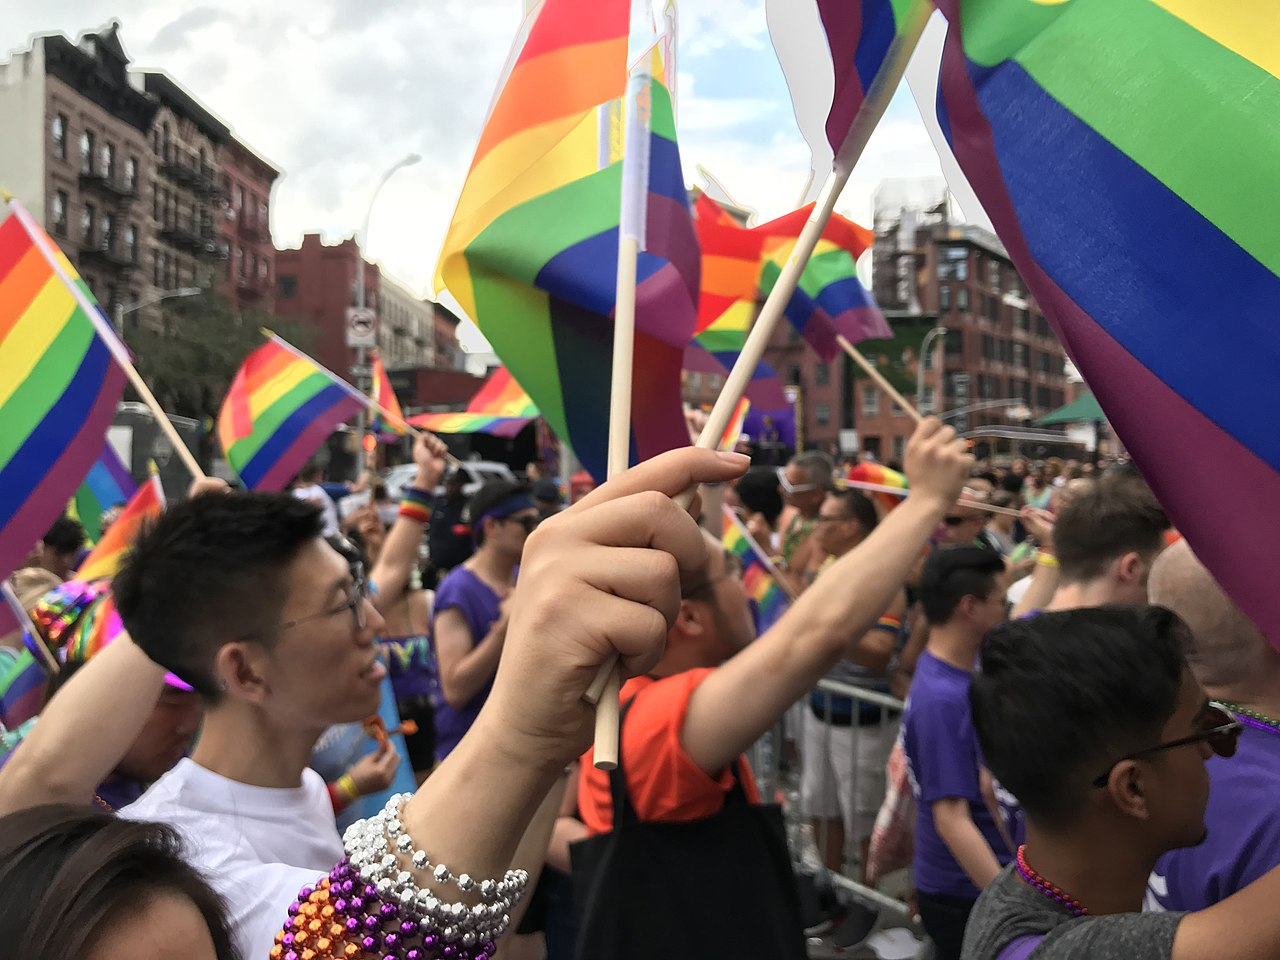 50 ways to celebrate Stonewall 50 and Pride Month in NYC | 6sqft